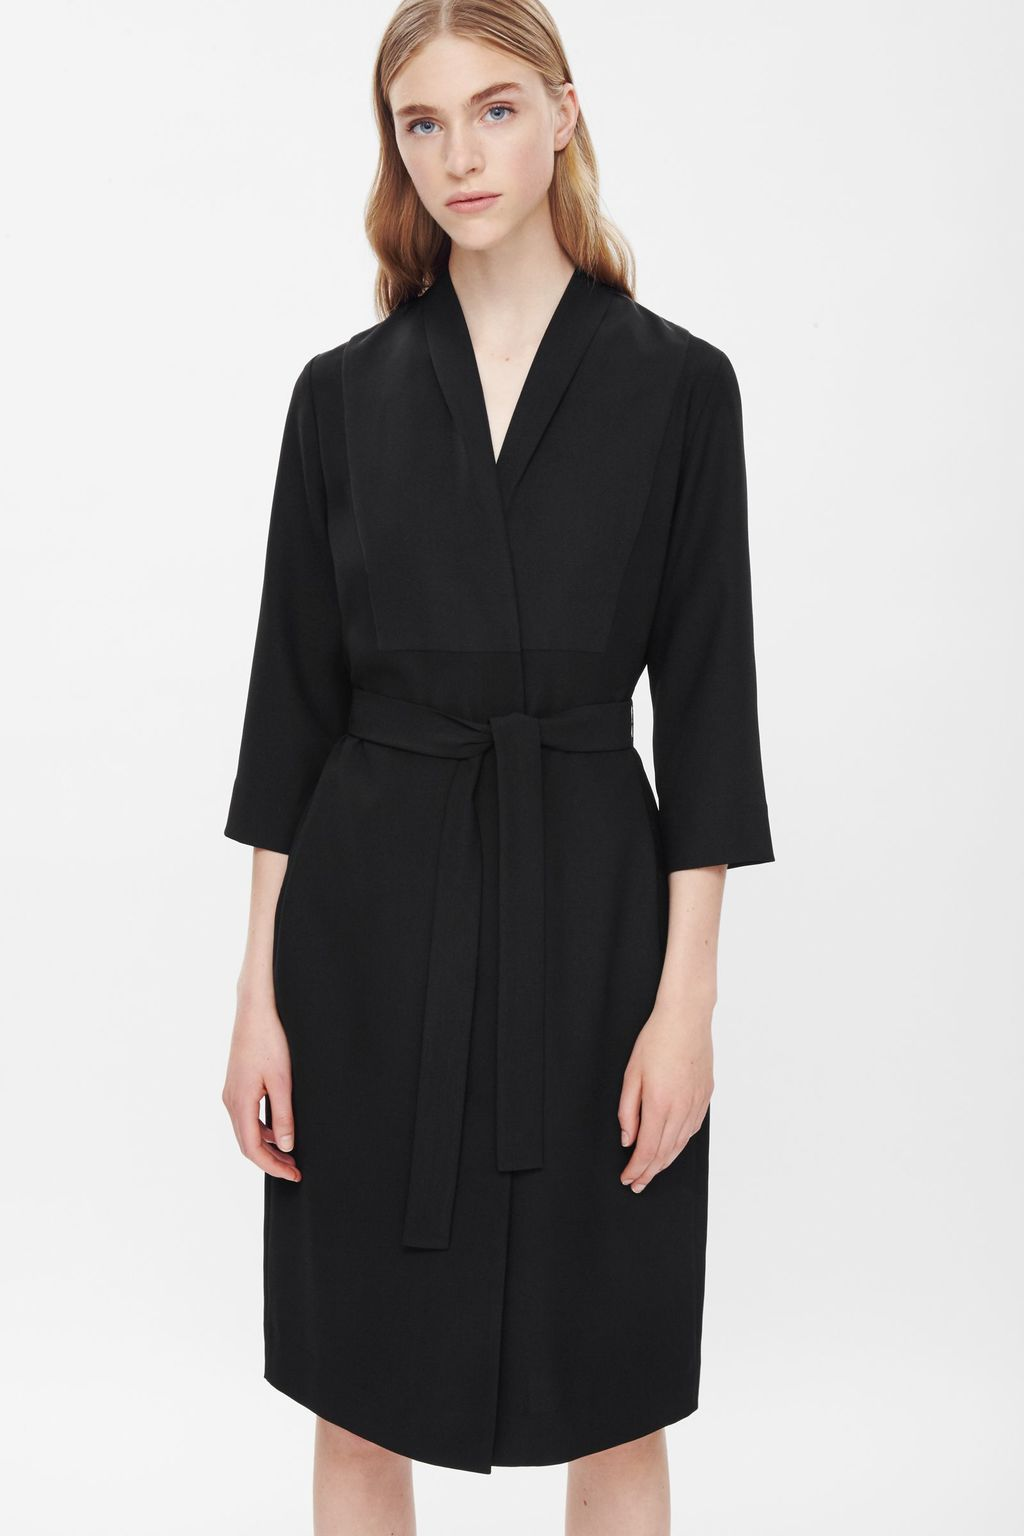 Long Blazer Dress - style: faux wrap/wrap; neckline: v-neck; fit: fitted at waist; pattern: plain; waist detail: belted waist/tie at waist/drawstring; predominant colour: black; occasions: casual, work, creative work; length: on the knee; fibres: polyester/polyamide - 100%; sleeve length: 3/4 length; sleeve style: standard; pattern type: fabric; texture group: woven light midweight; season: a/w 2015; wardrobe: basic